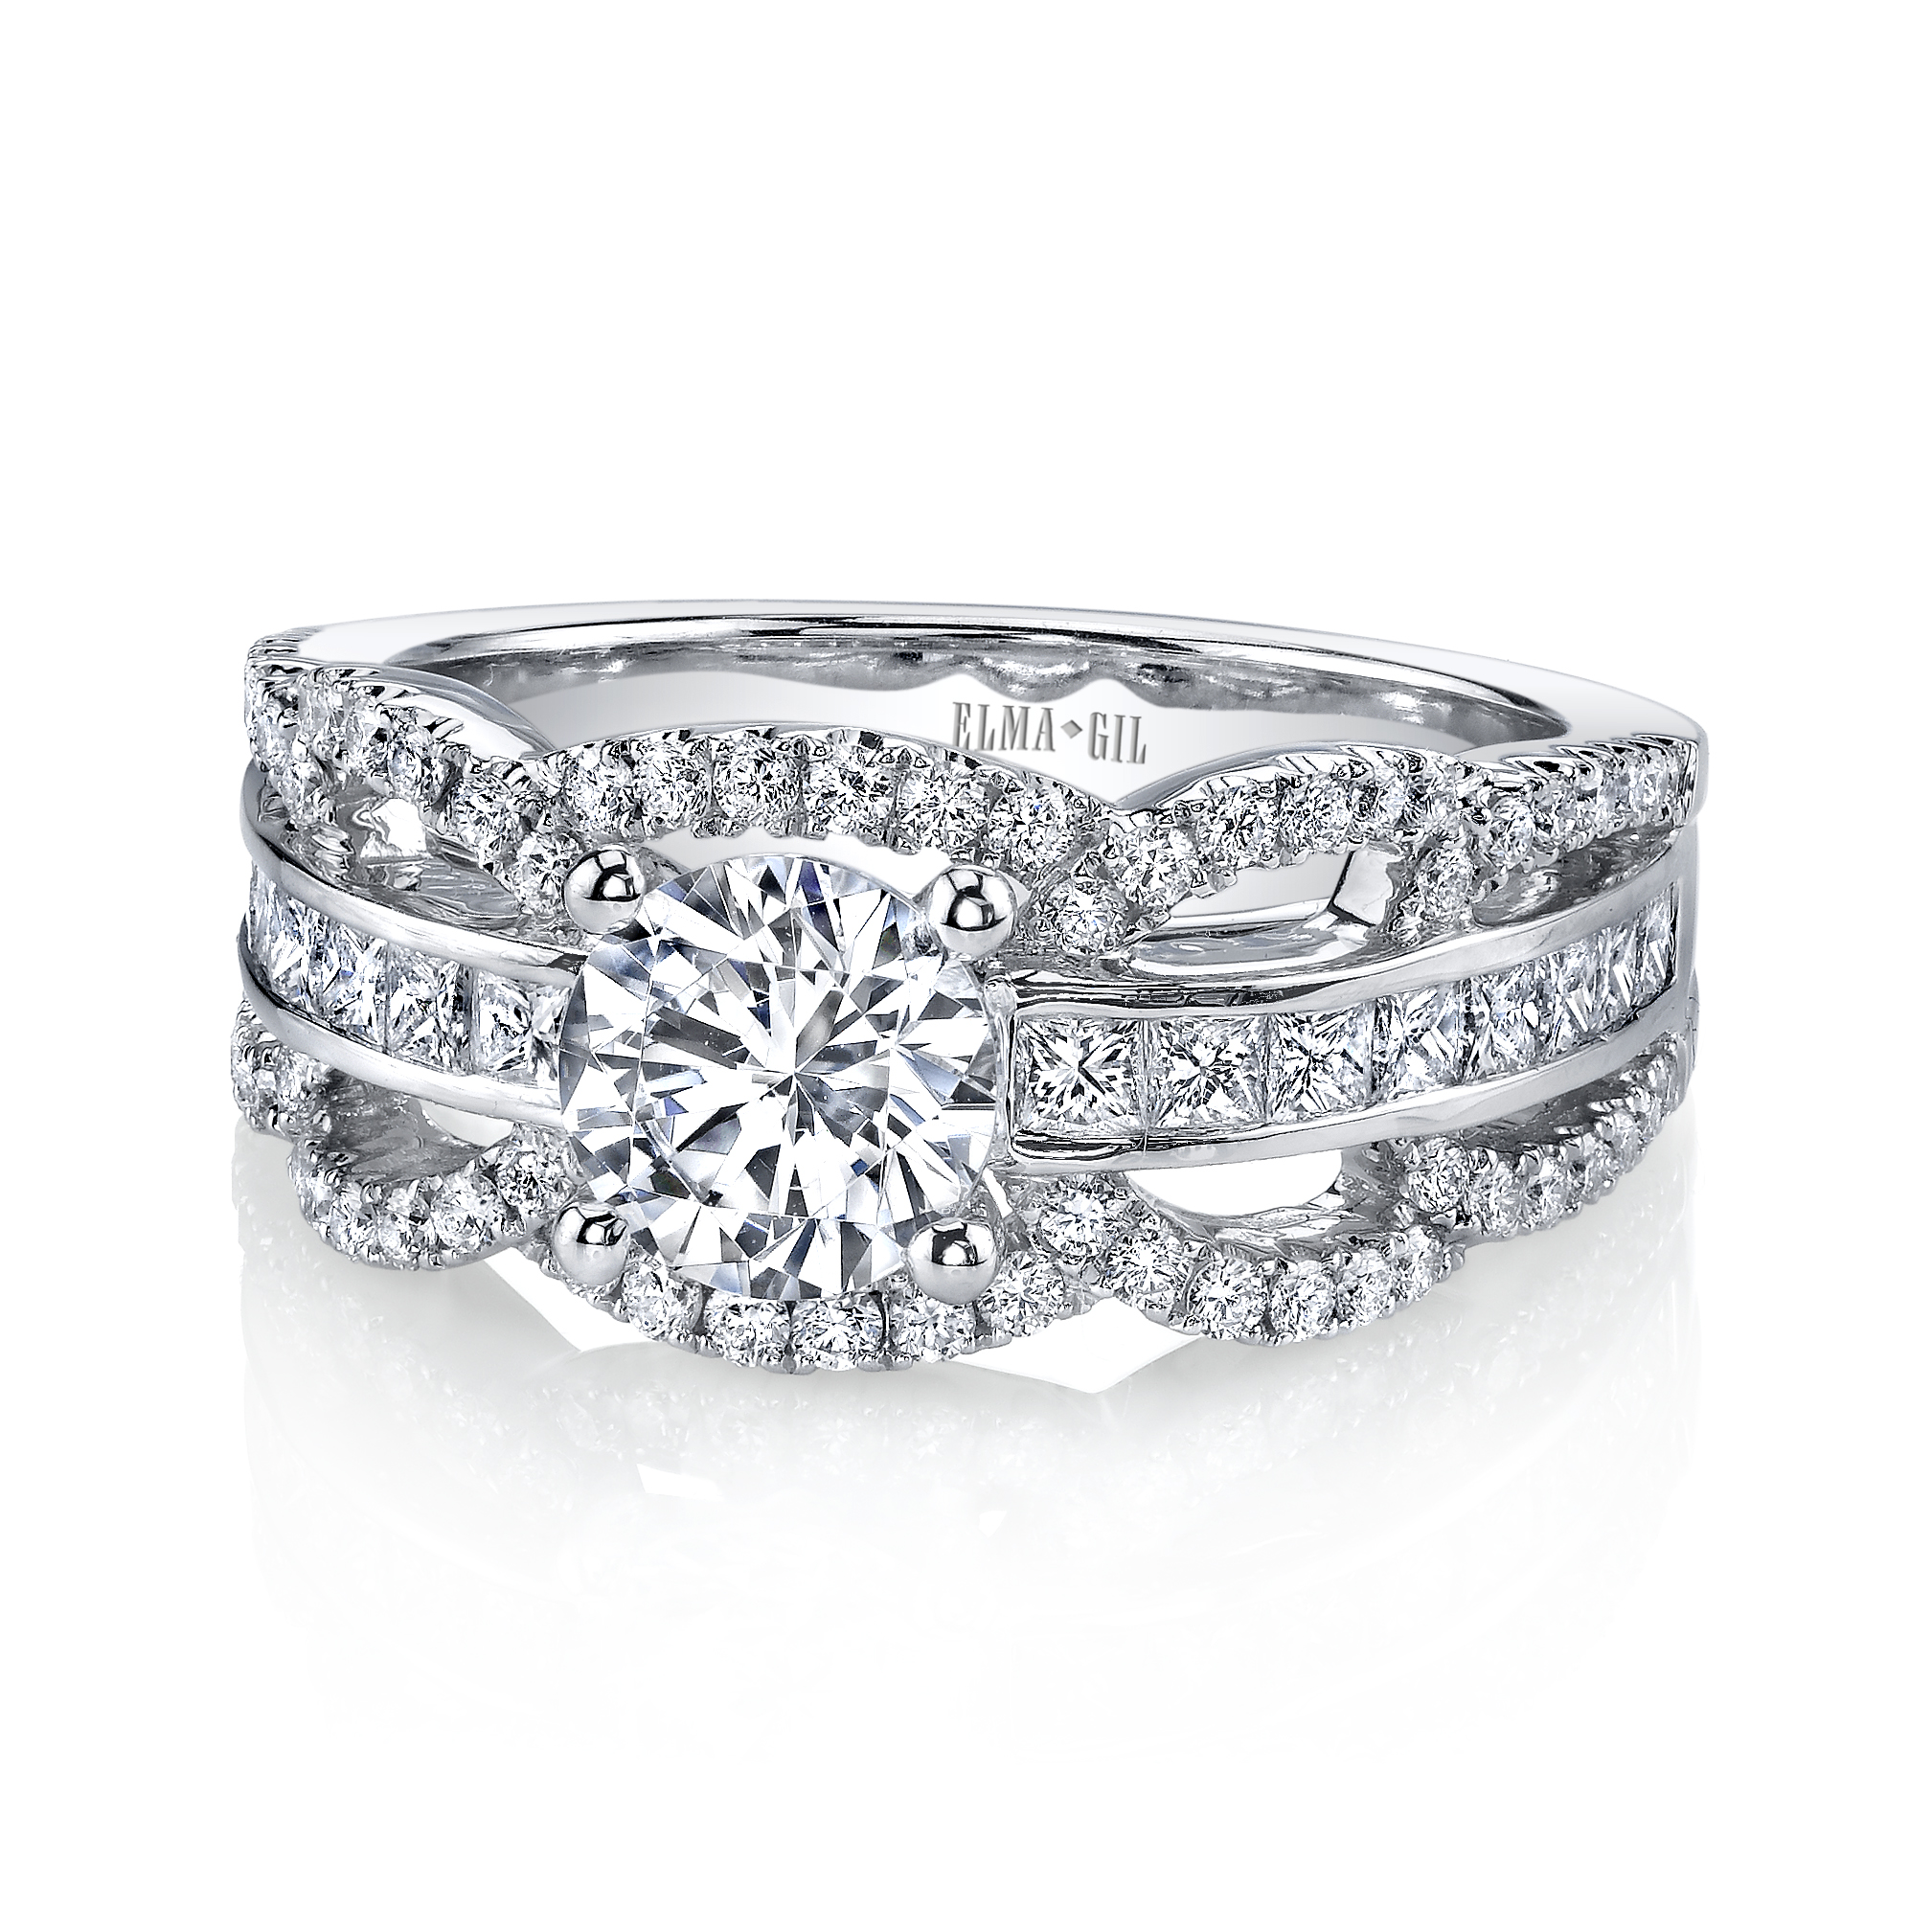 dr 392 - Dr Who Wedding Ring